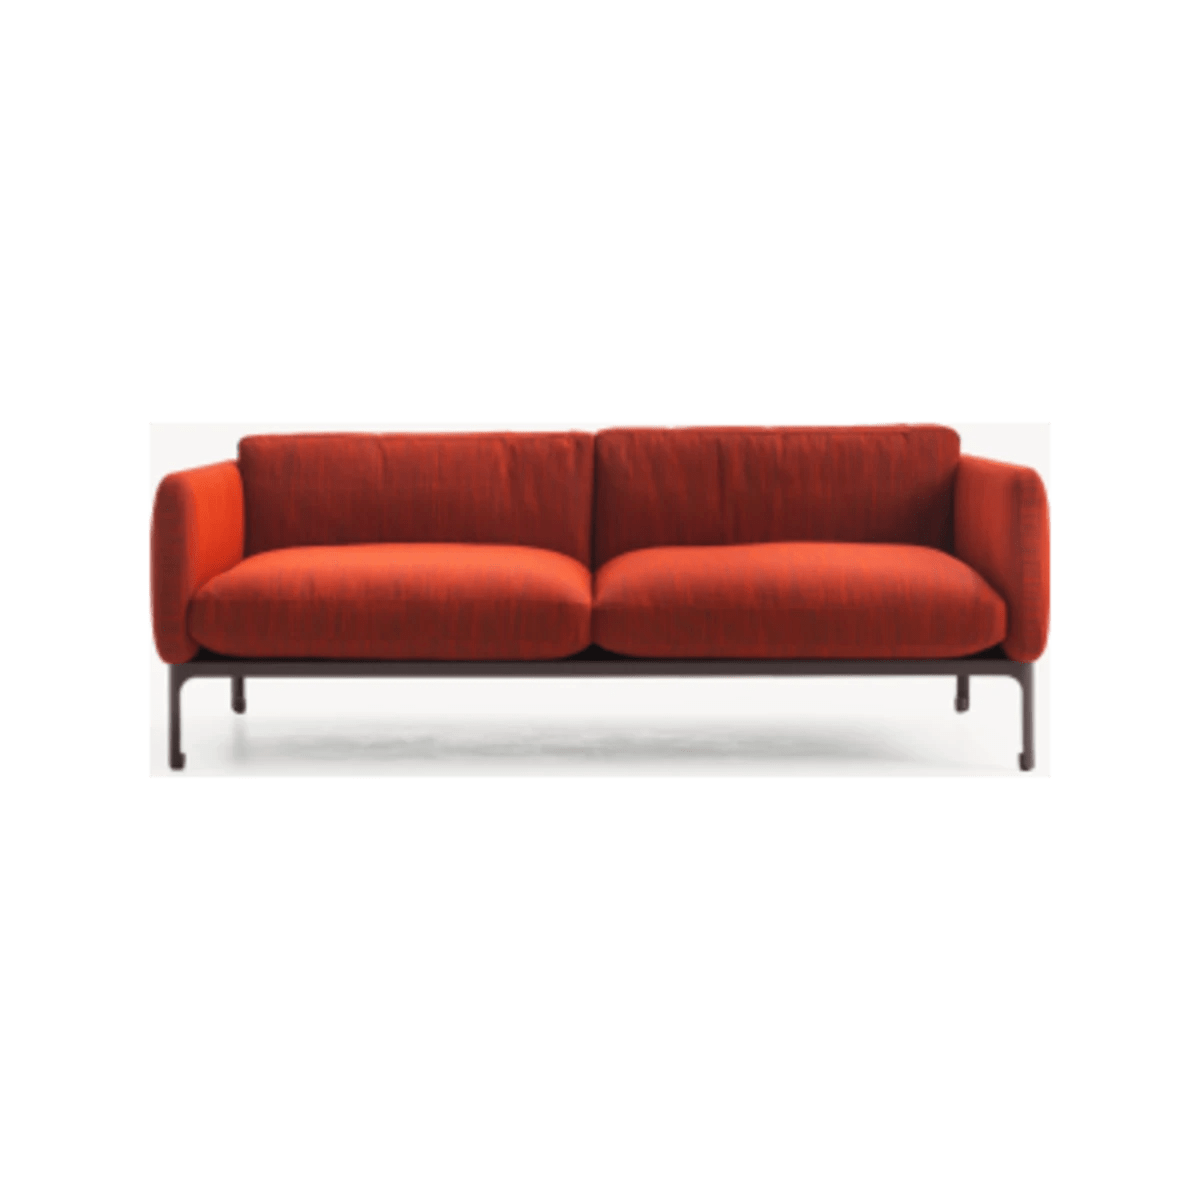 Lila Couch Lila Sofa Decorrest Furniture Sofa Icelila With Lila Sofa Ramos